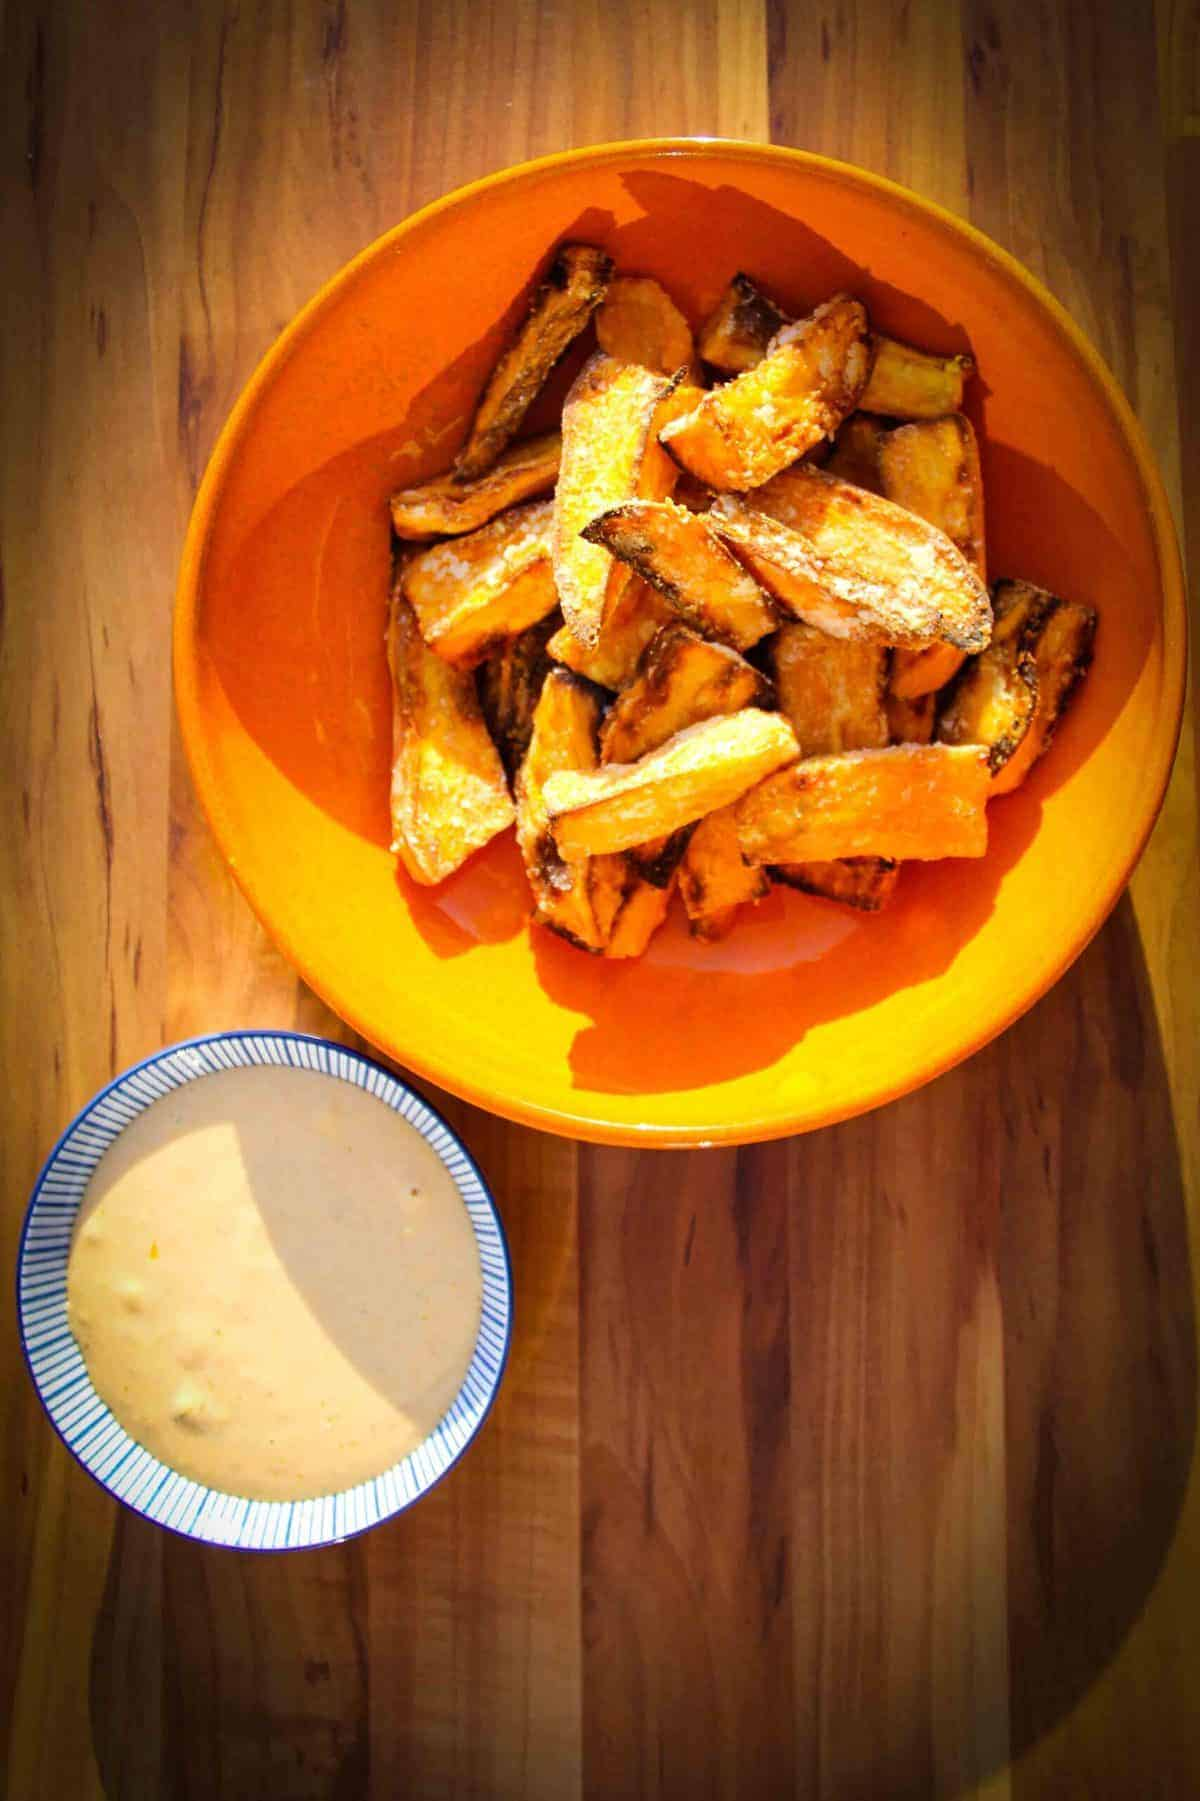 Sweet potato fries in a bowl with spicy mayo on the side.